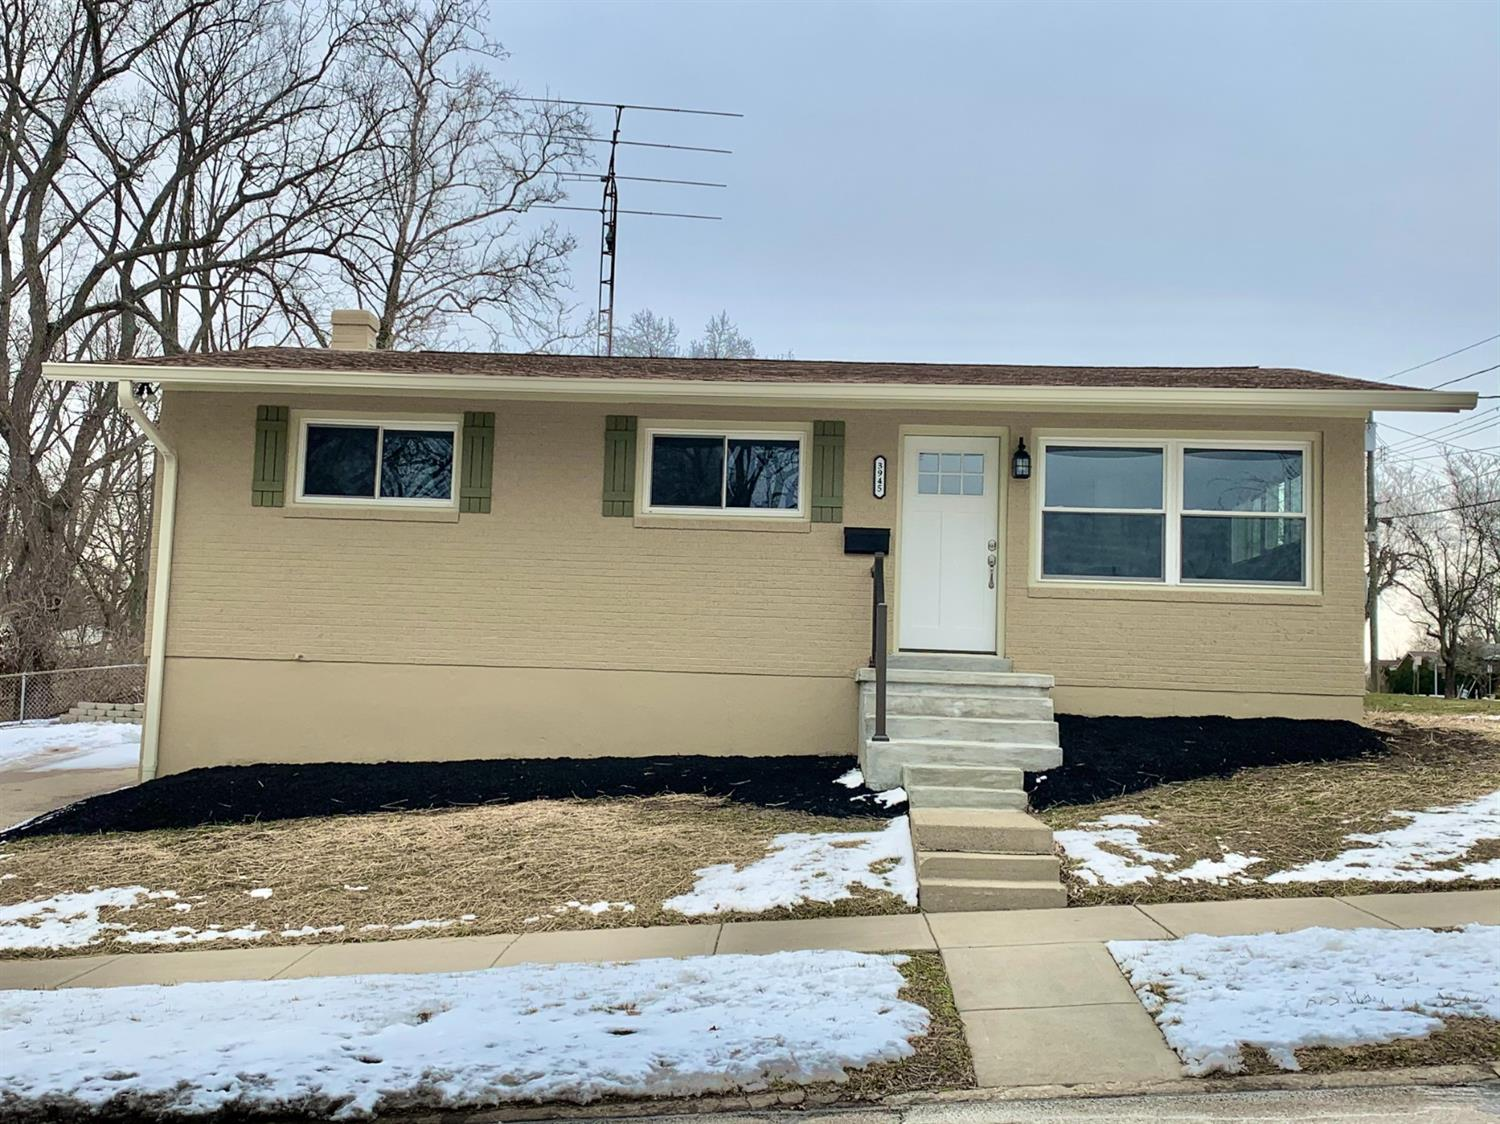 3945 Mantell Ave Dillonvale, OH